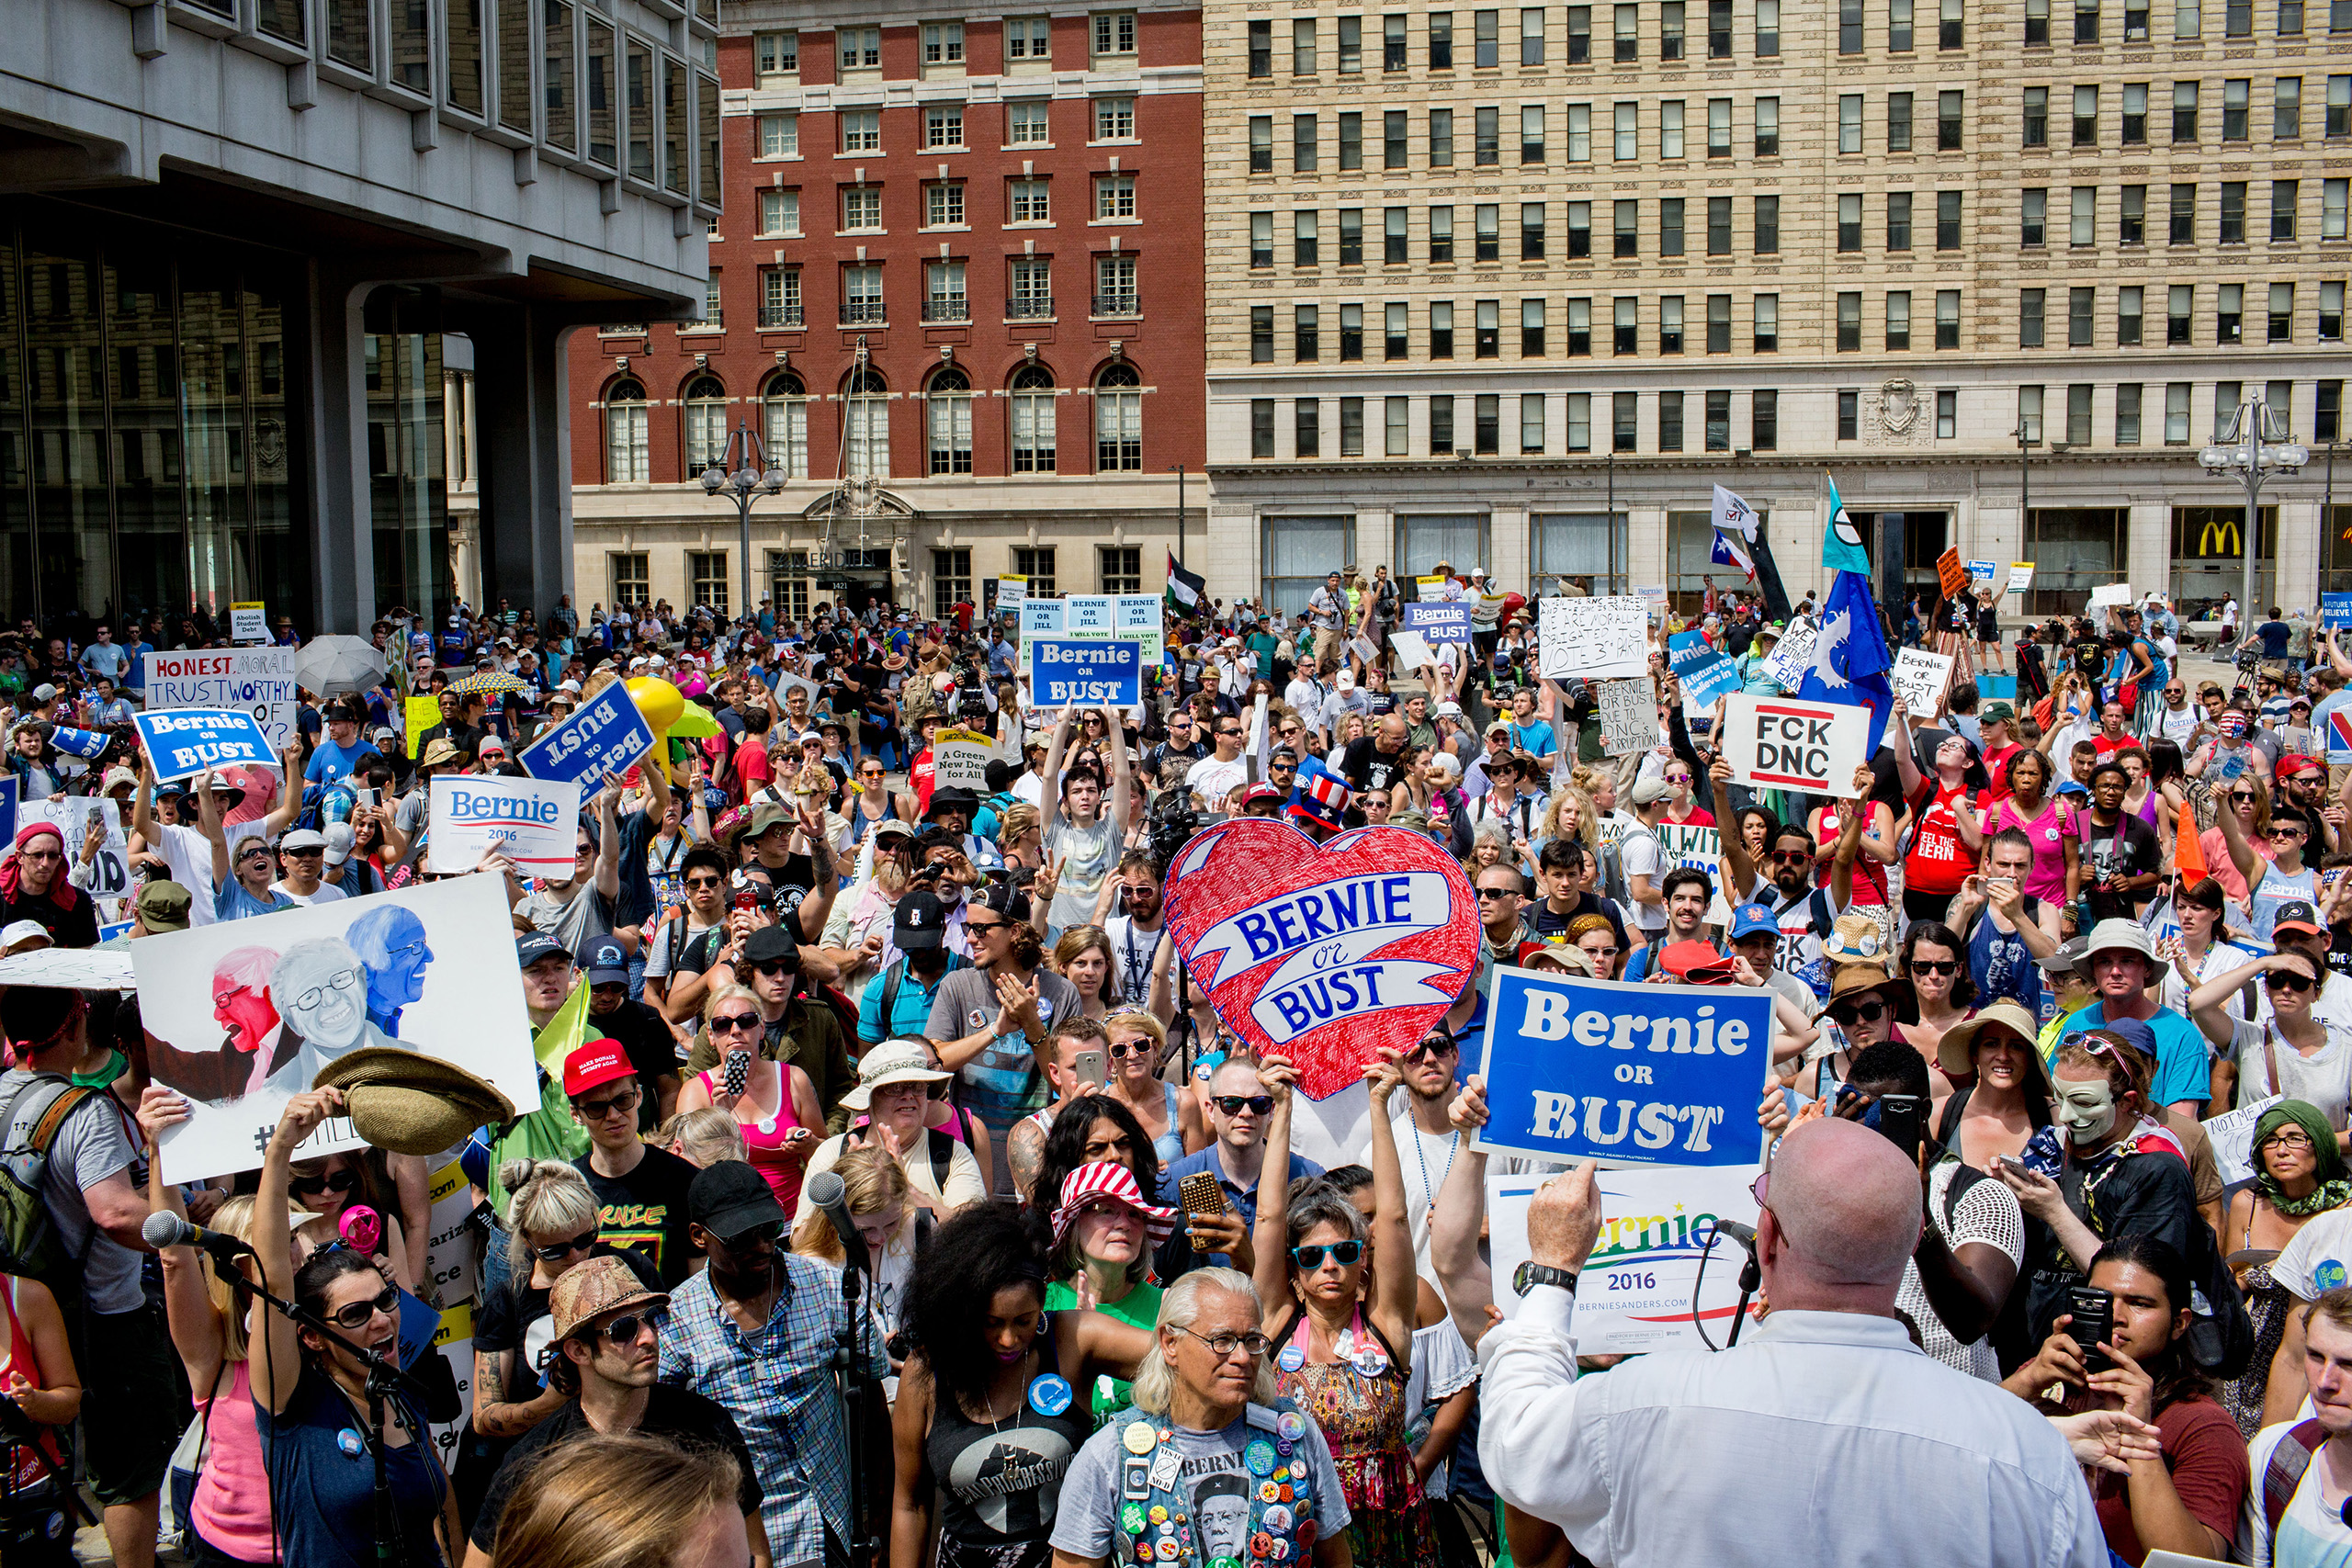 Protesters convened at City Hall in Philadelphia on Tuesday afternoon to watch speaker Jill Stein and protest the Democratic National Convention at the Wells Fargo Center on July 26, 2016 in Philadelphia.